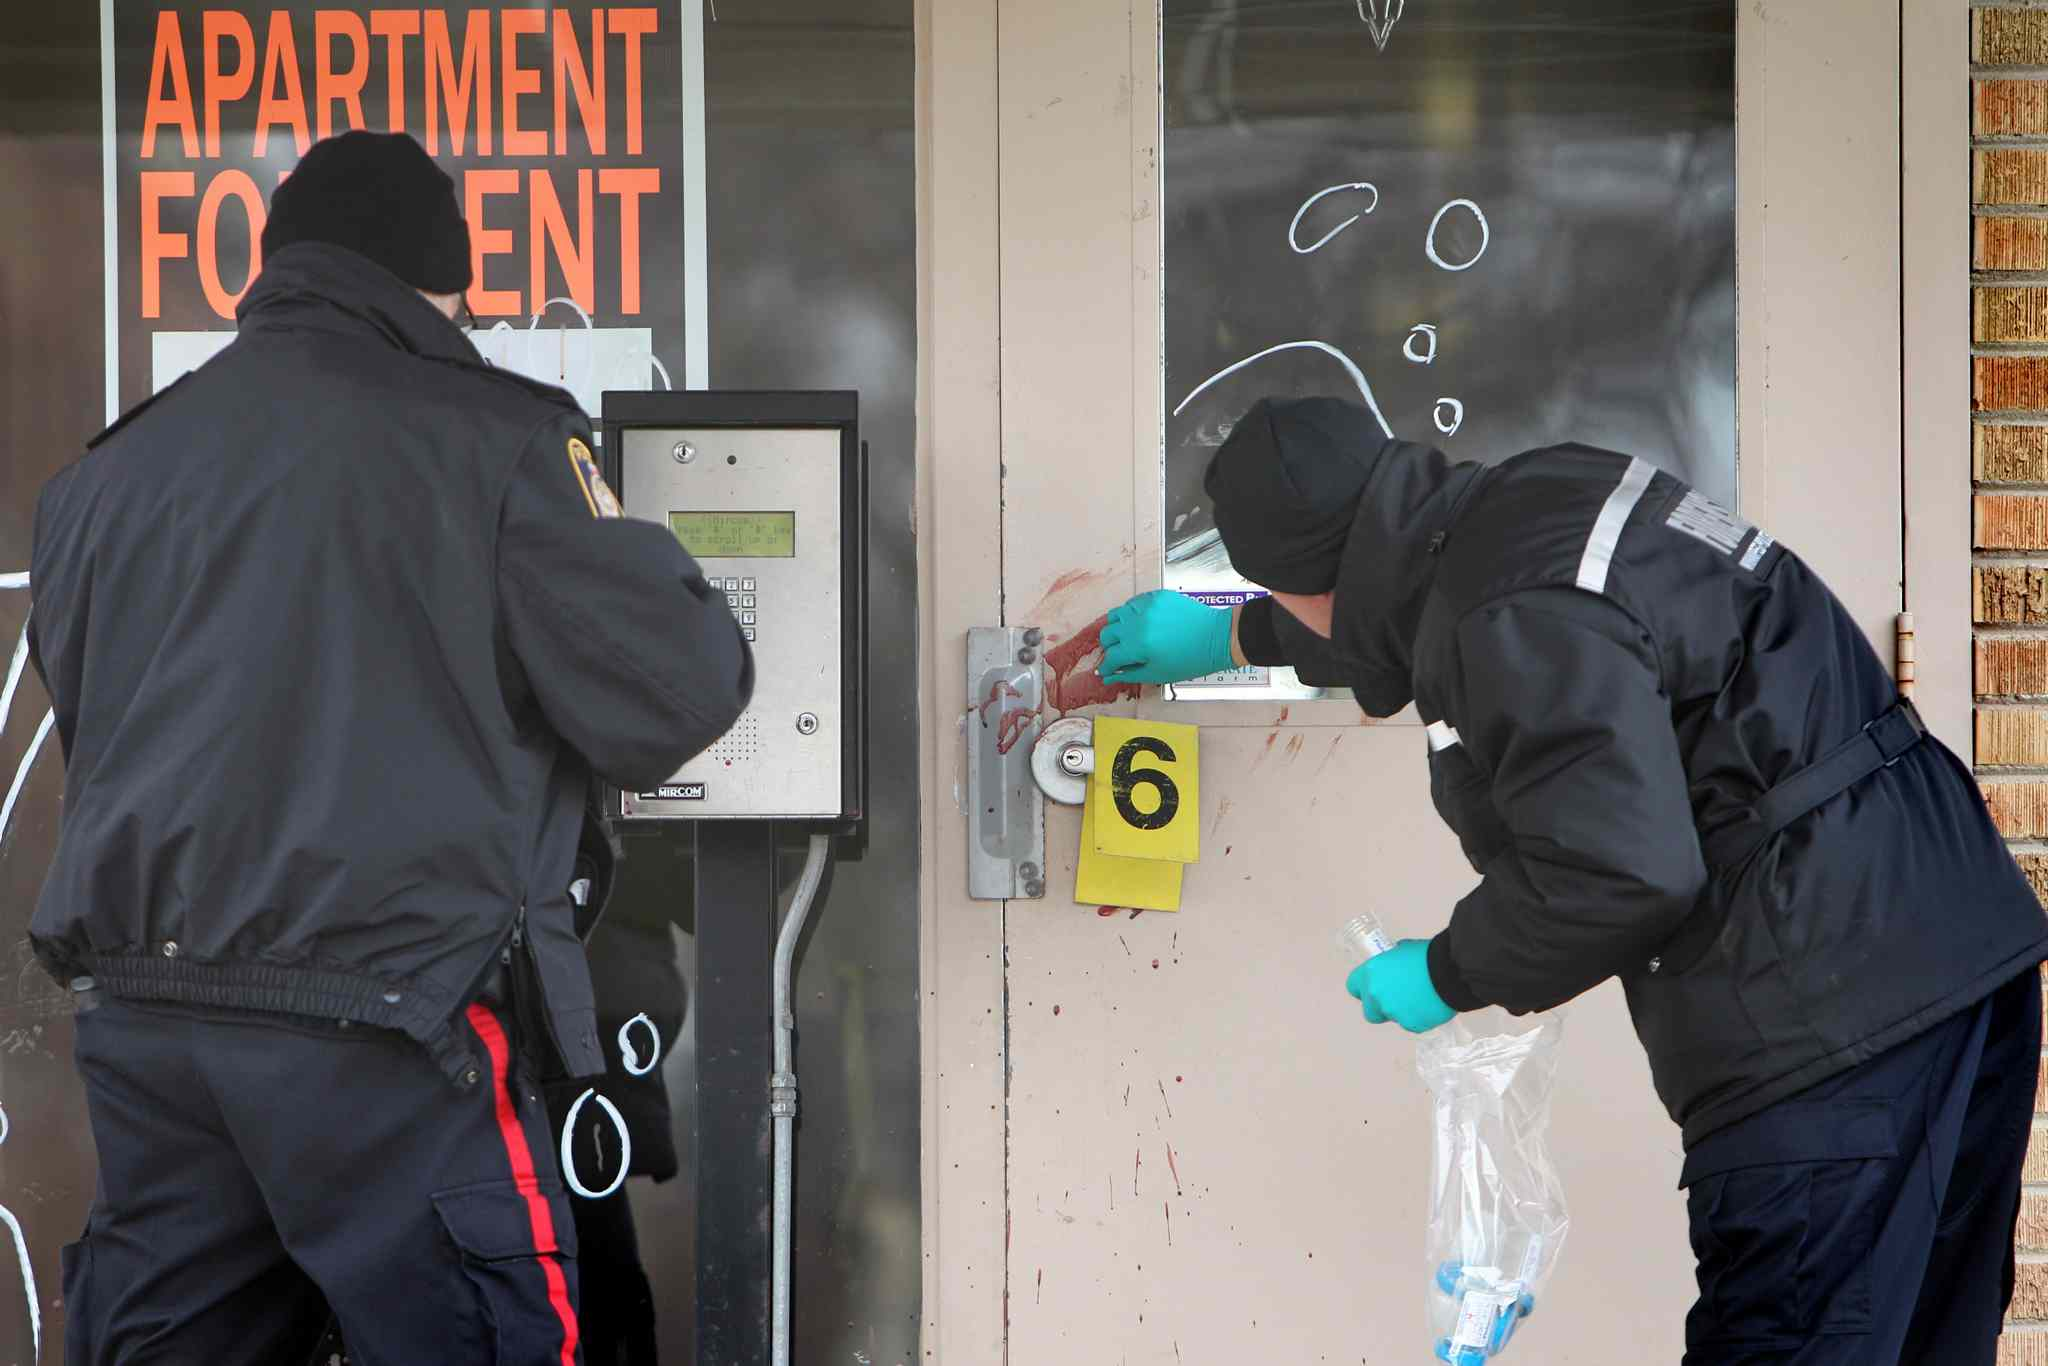 Police investigators examine the blood left behind at the Capri apartment building at 2130 Portage Ave. where they found three people suffering from various injuries Friday night. Two of the victims, a 42-year-old male and a 32-year-old female, were taken to hospital in stable condition. A third victim, a 39-year-old male, suffered upper body injuries and was taken to hospital in critical condition. He later died as a result of those injuries. RUTH BONNEVILLE / WINNIPEG FREE PRESS